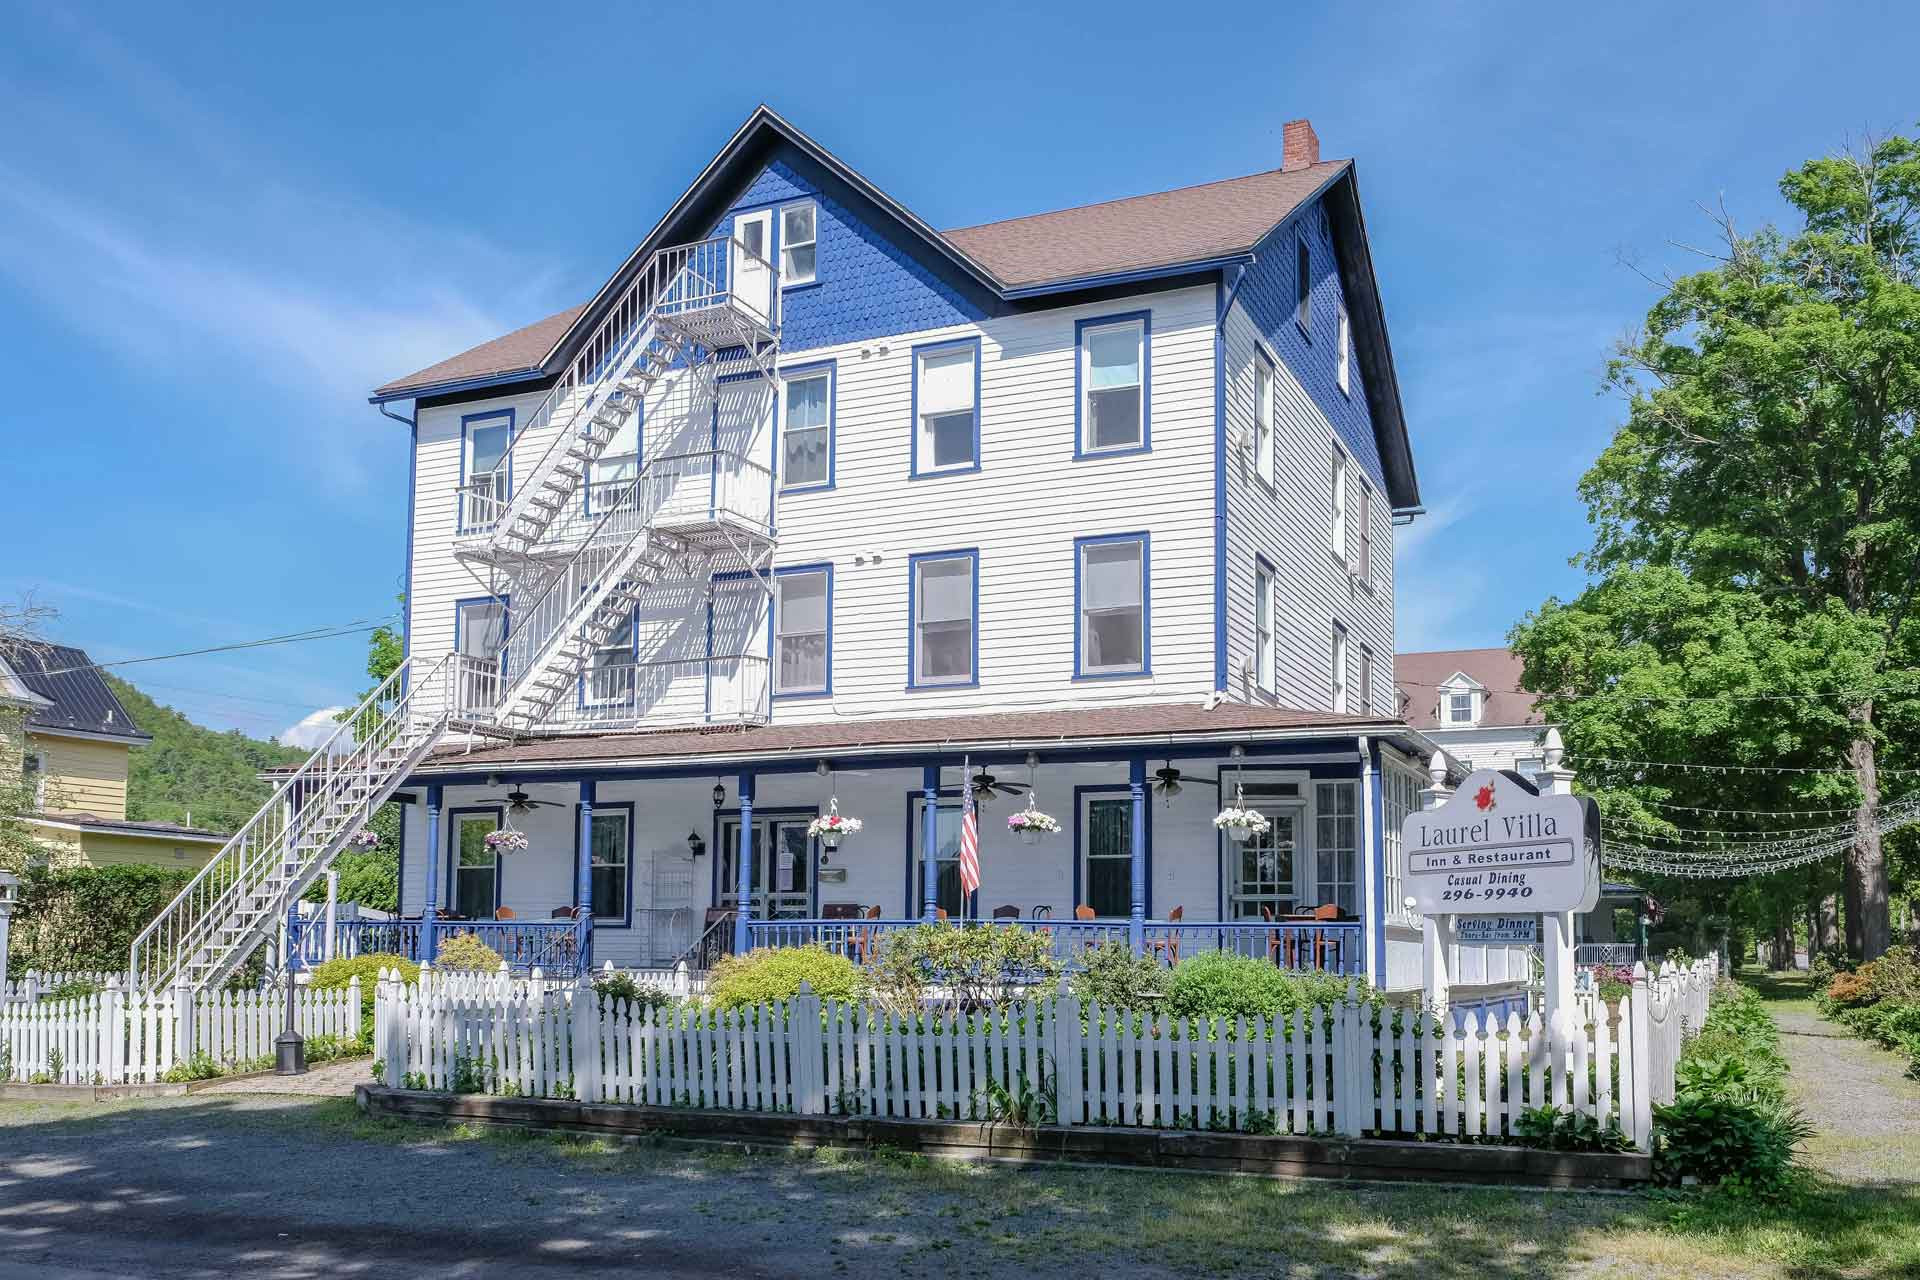 large historical white house with blue trim